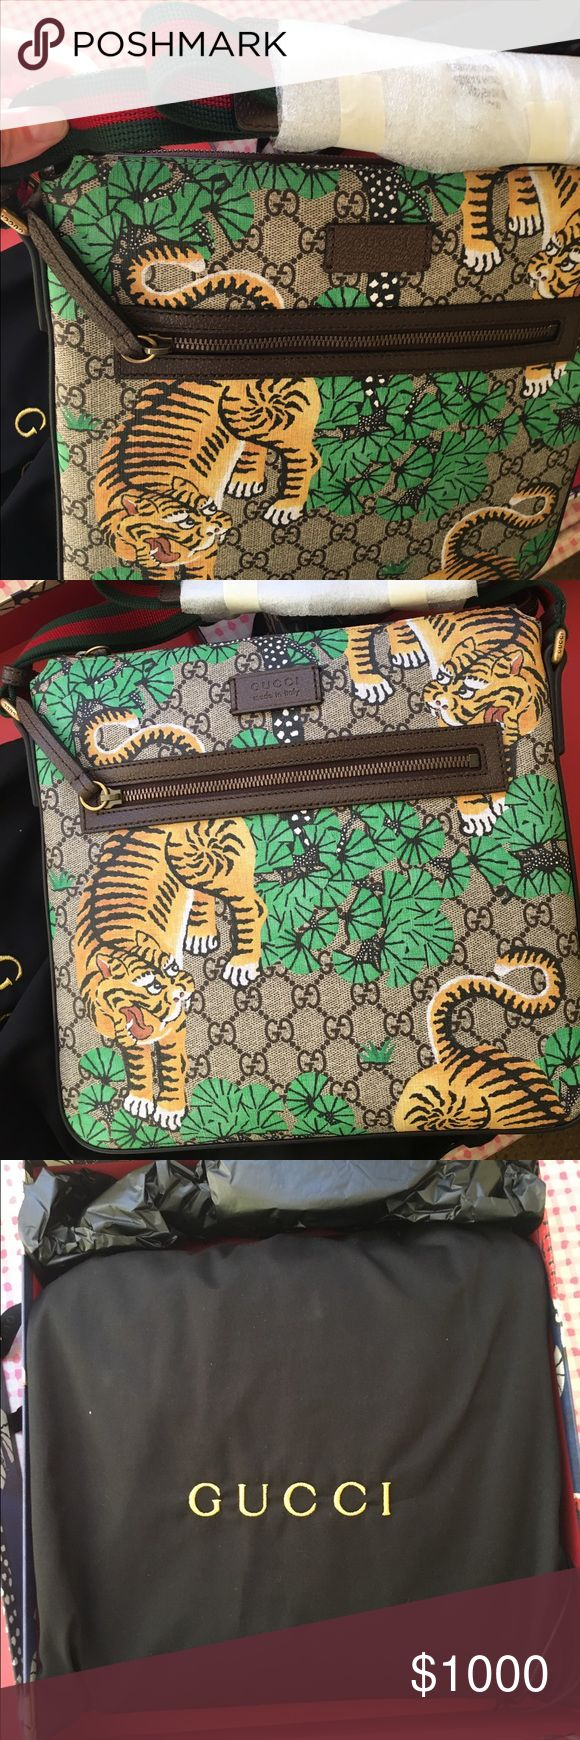 Gucci Bengal GG Supreme Messenger Bag Brand new. Never used. Men's Gucci Messenger Bag. Comes with the dust bag and original limited edition box. Gucci Bags Messenger Bags